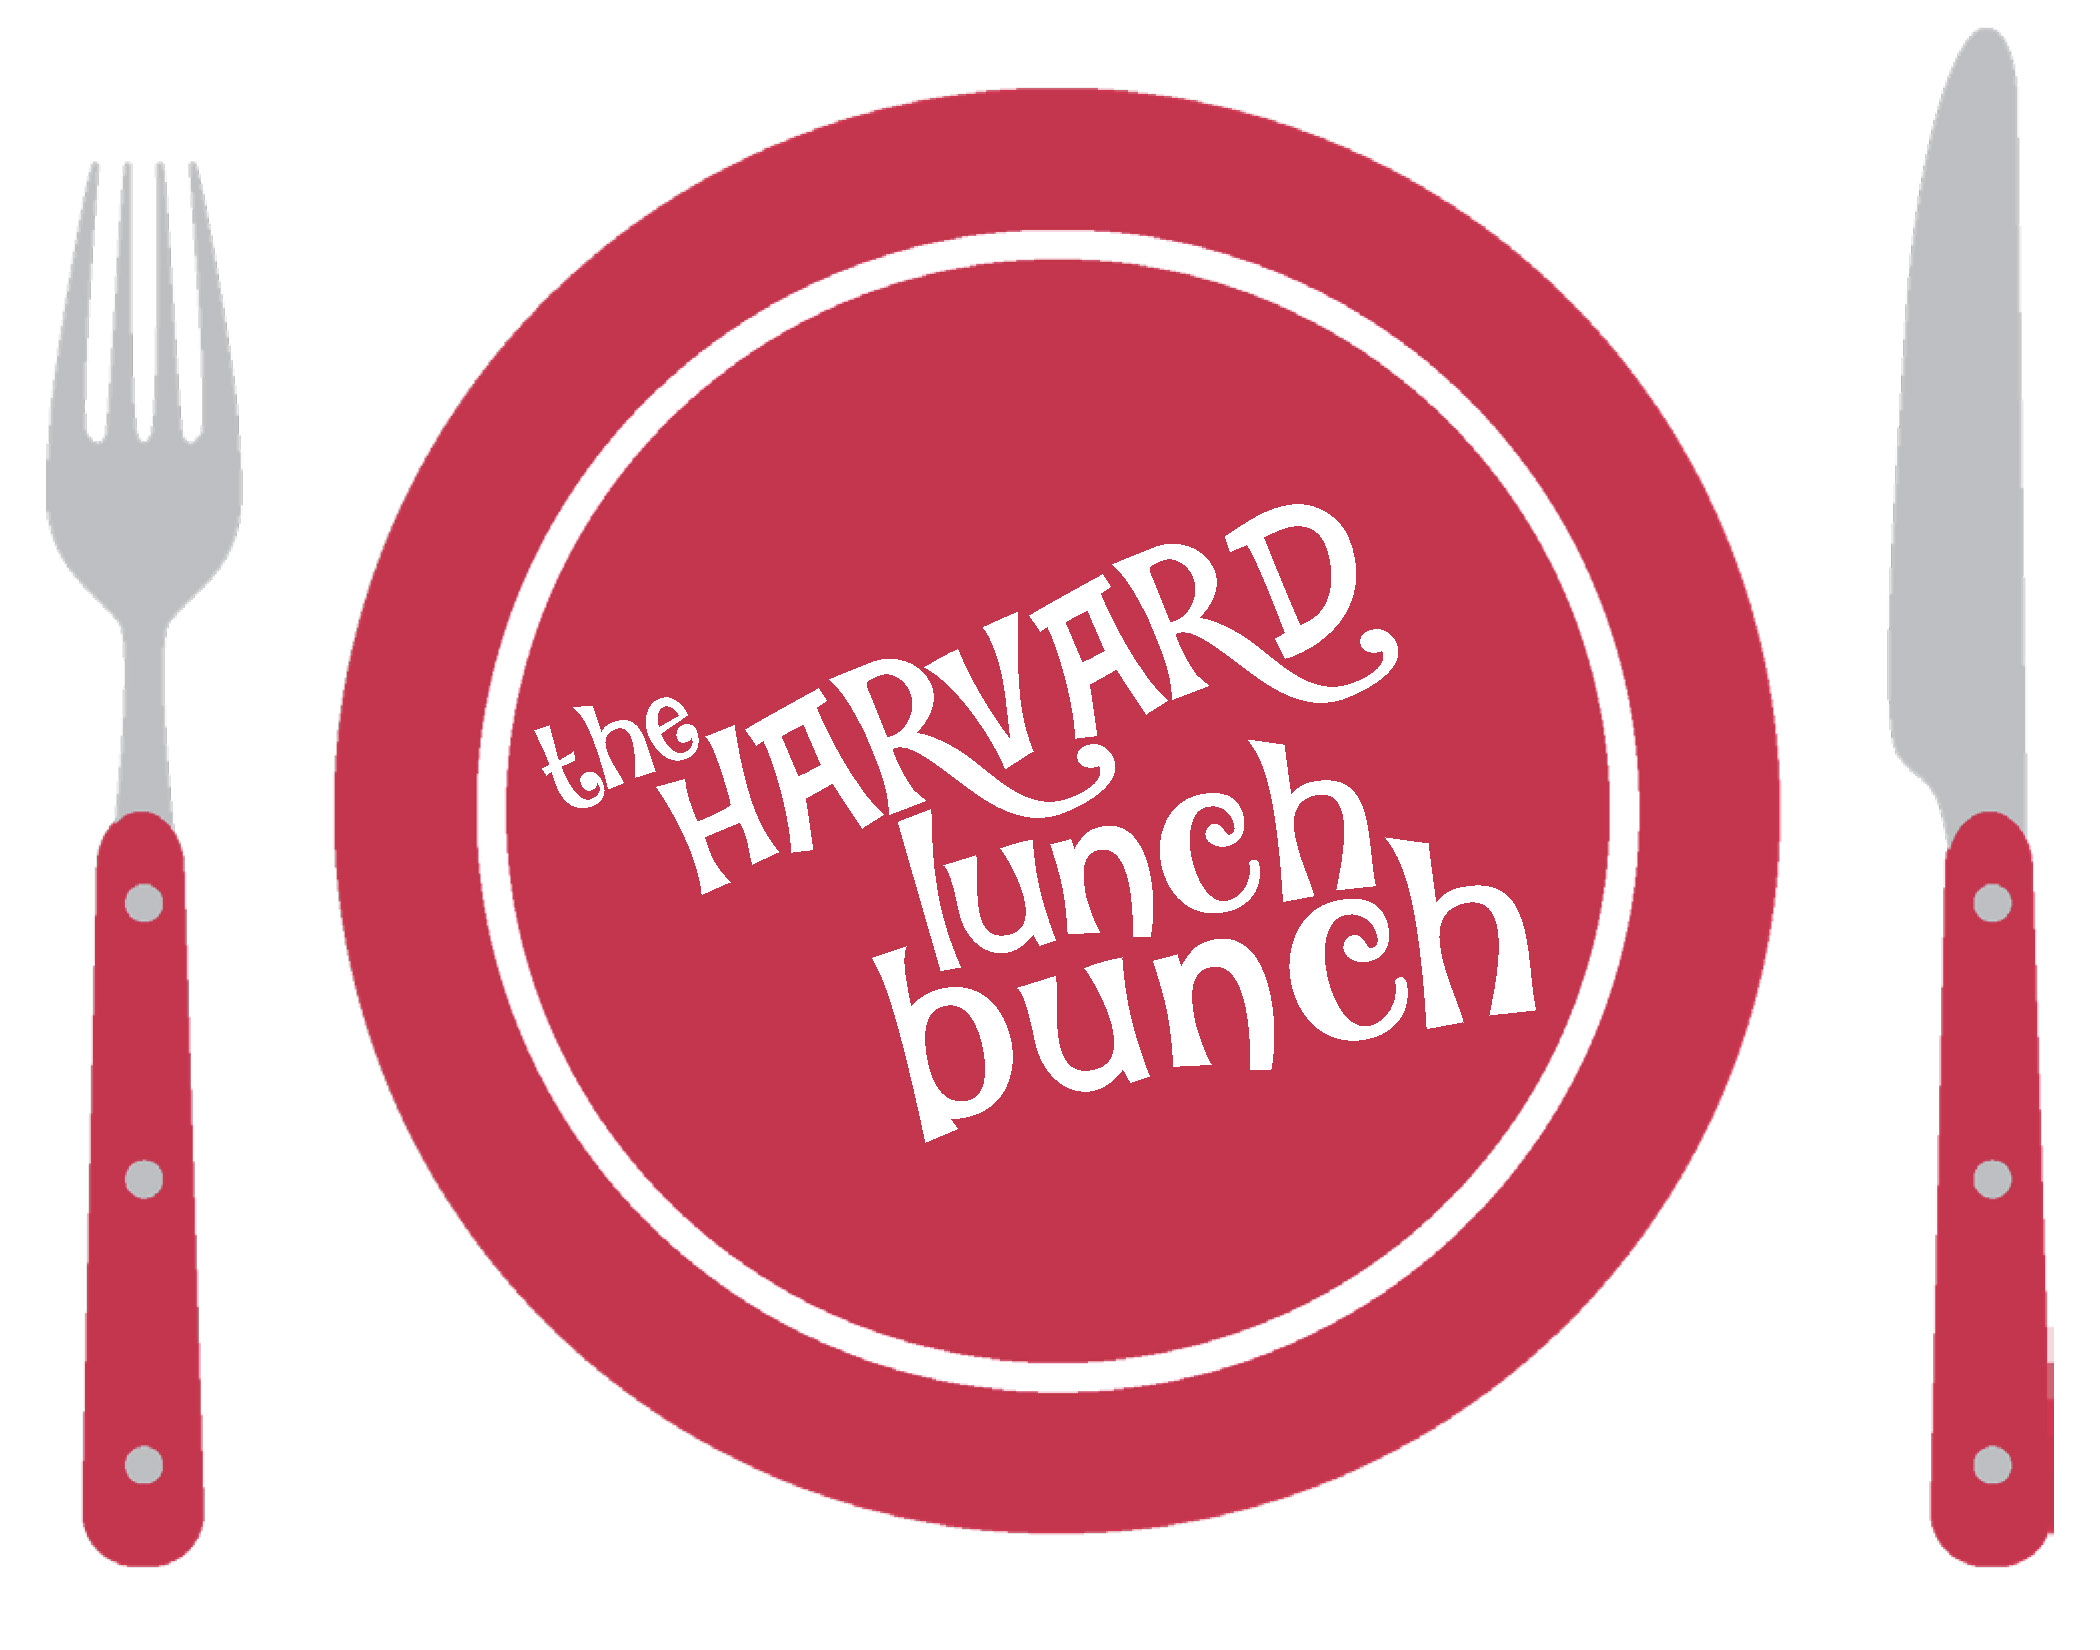 Harvard Lunch Bunch